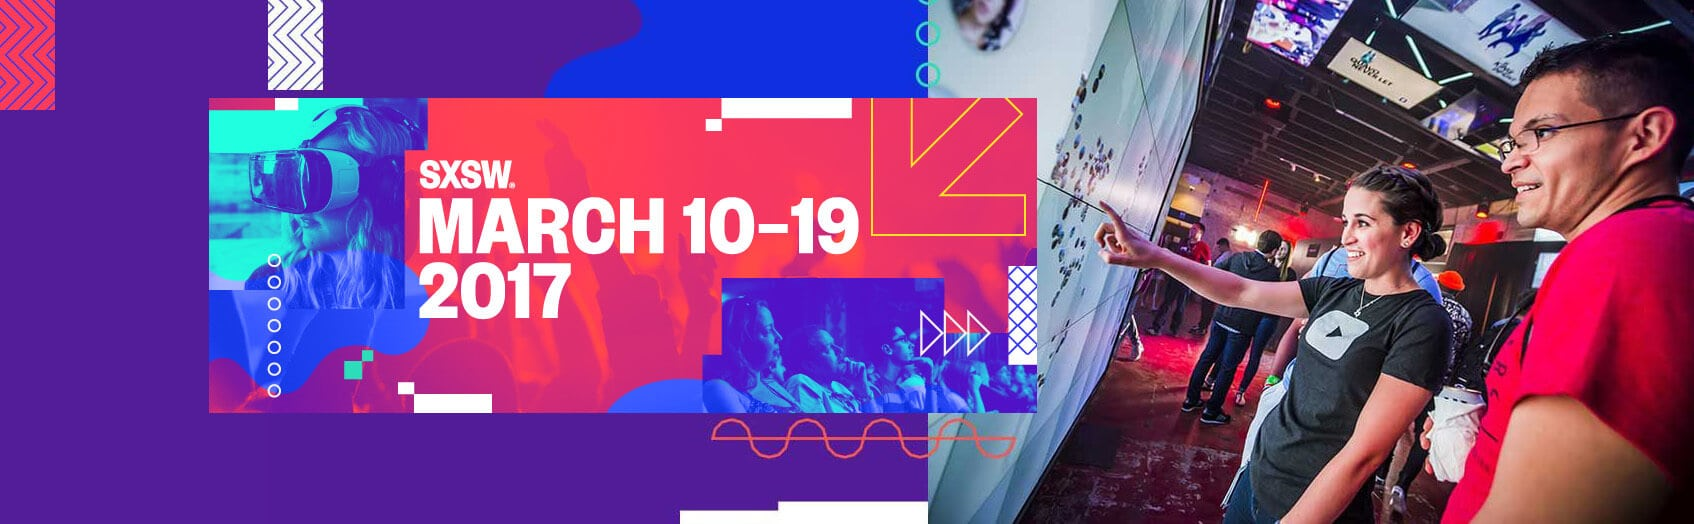 SXSW in Top tech events 2017, Q1 - guide by Redwerk